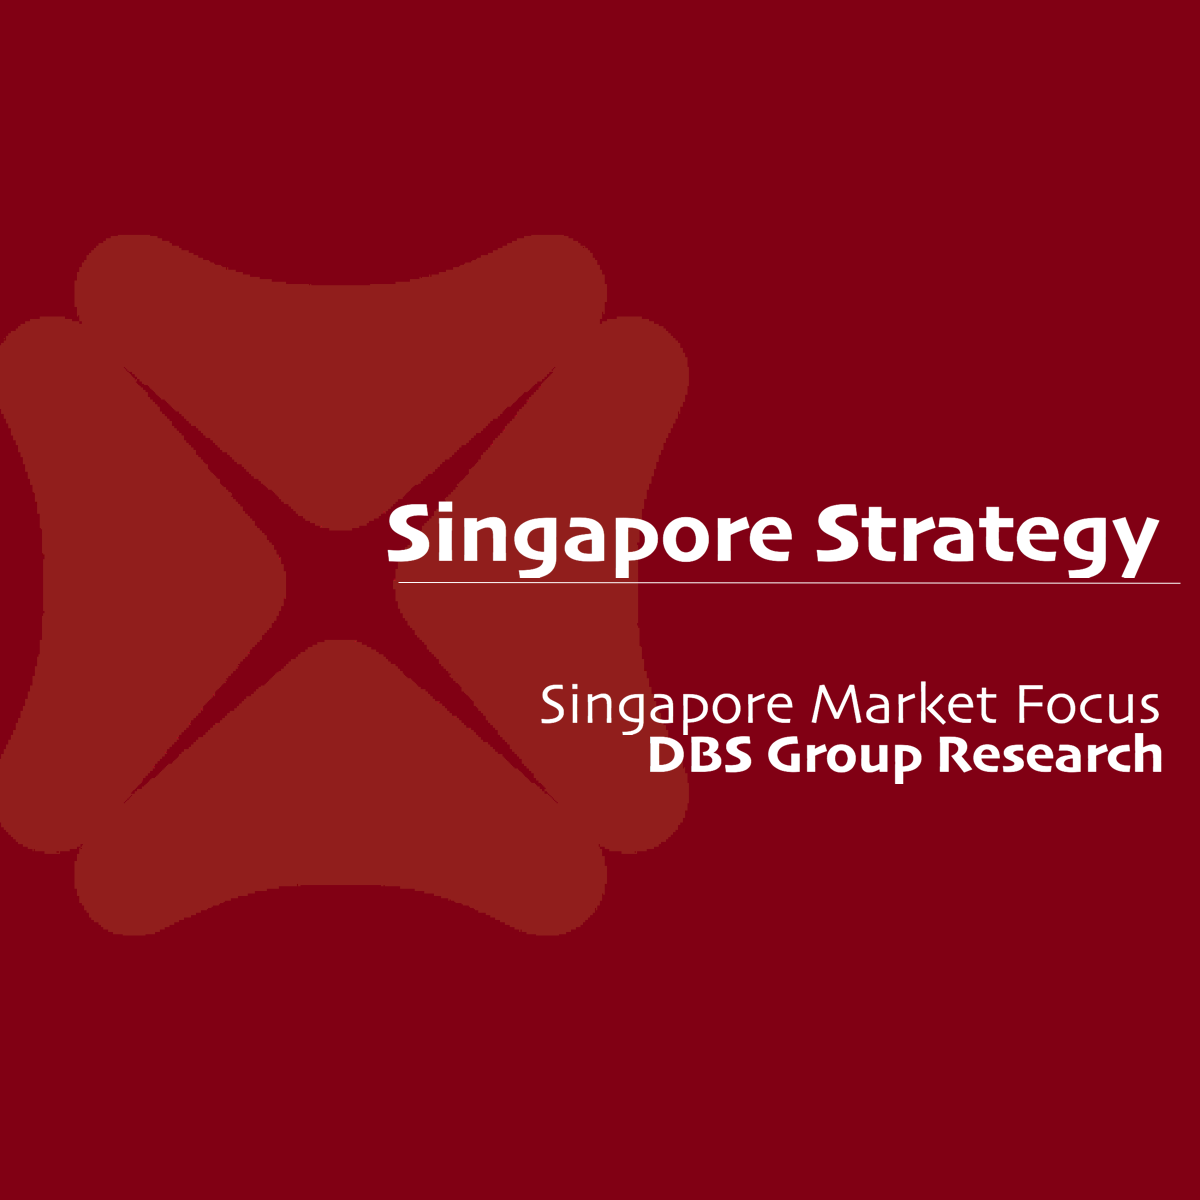 Singapore Market Focus - DBS Vickers 2017-05-16: Positioning For The Shift